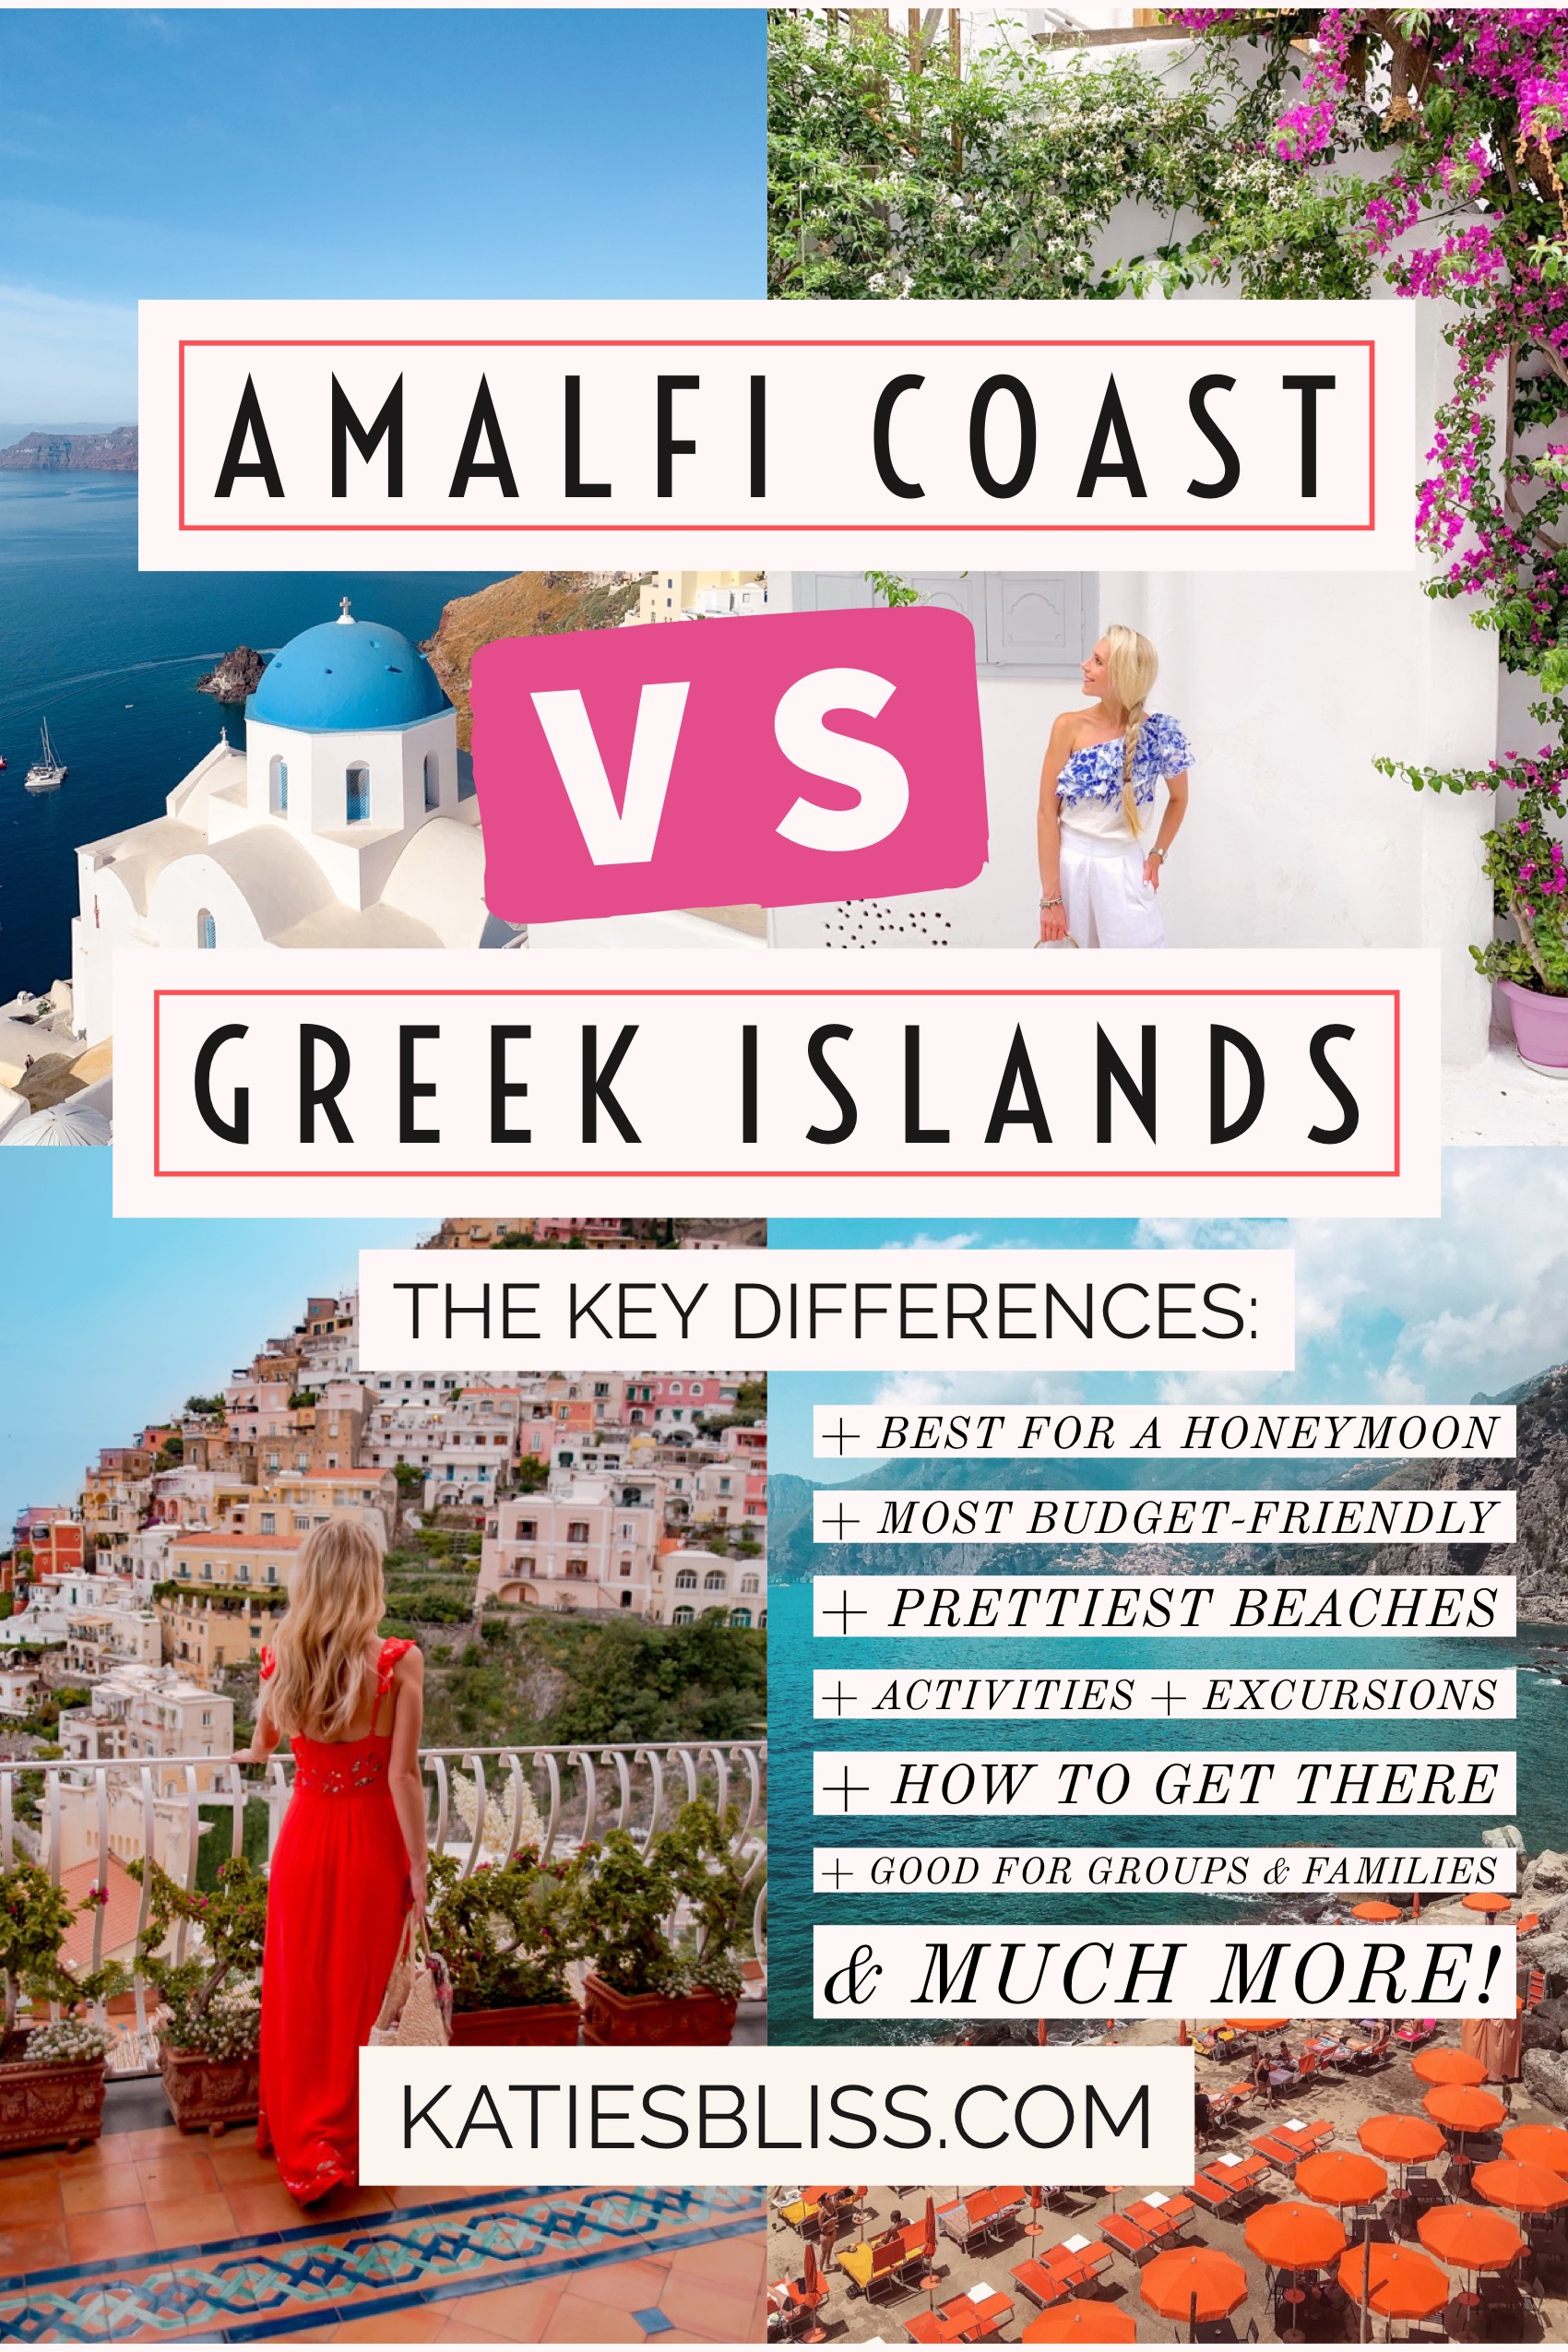 Amalfi Coast vs Santorini Mykonos Greece